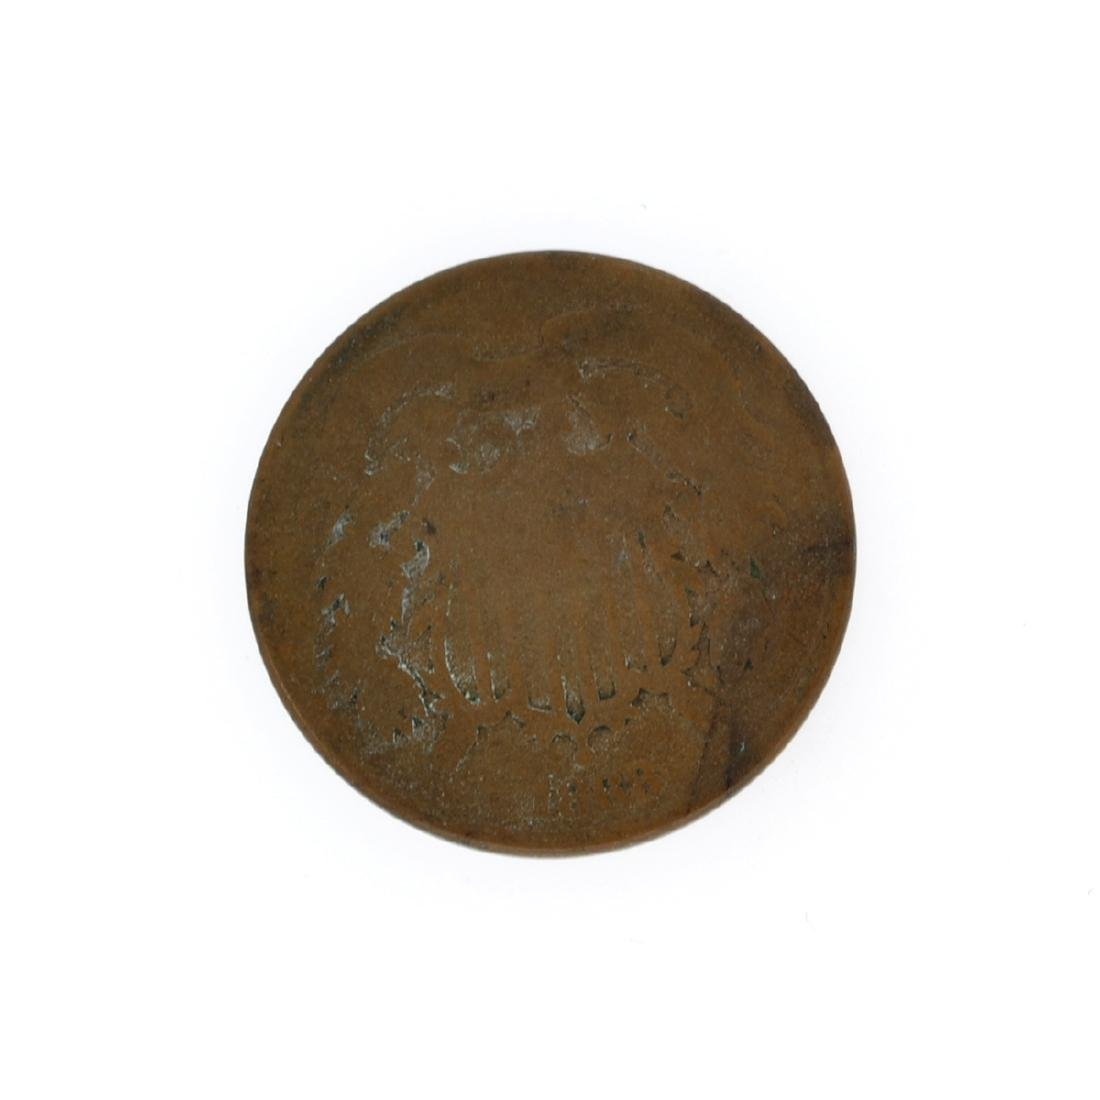 Rare 1868 Two-Cents Piece Coin